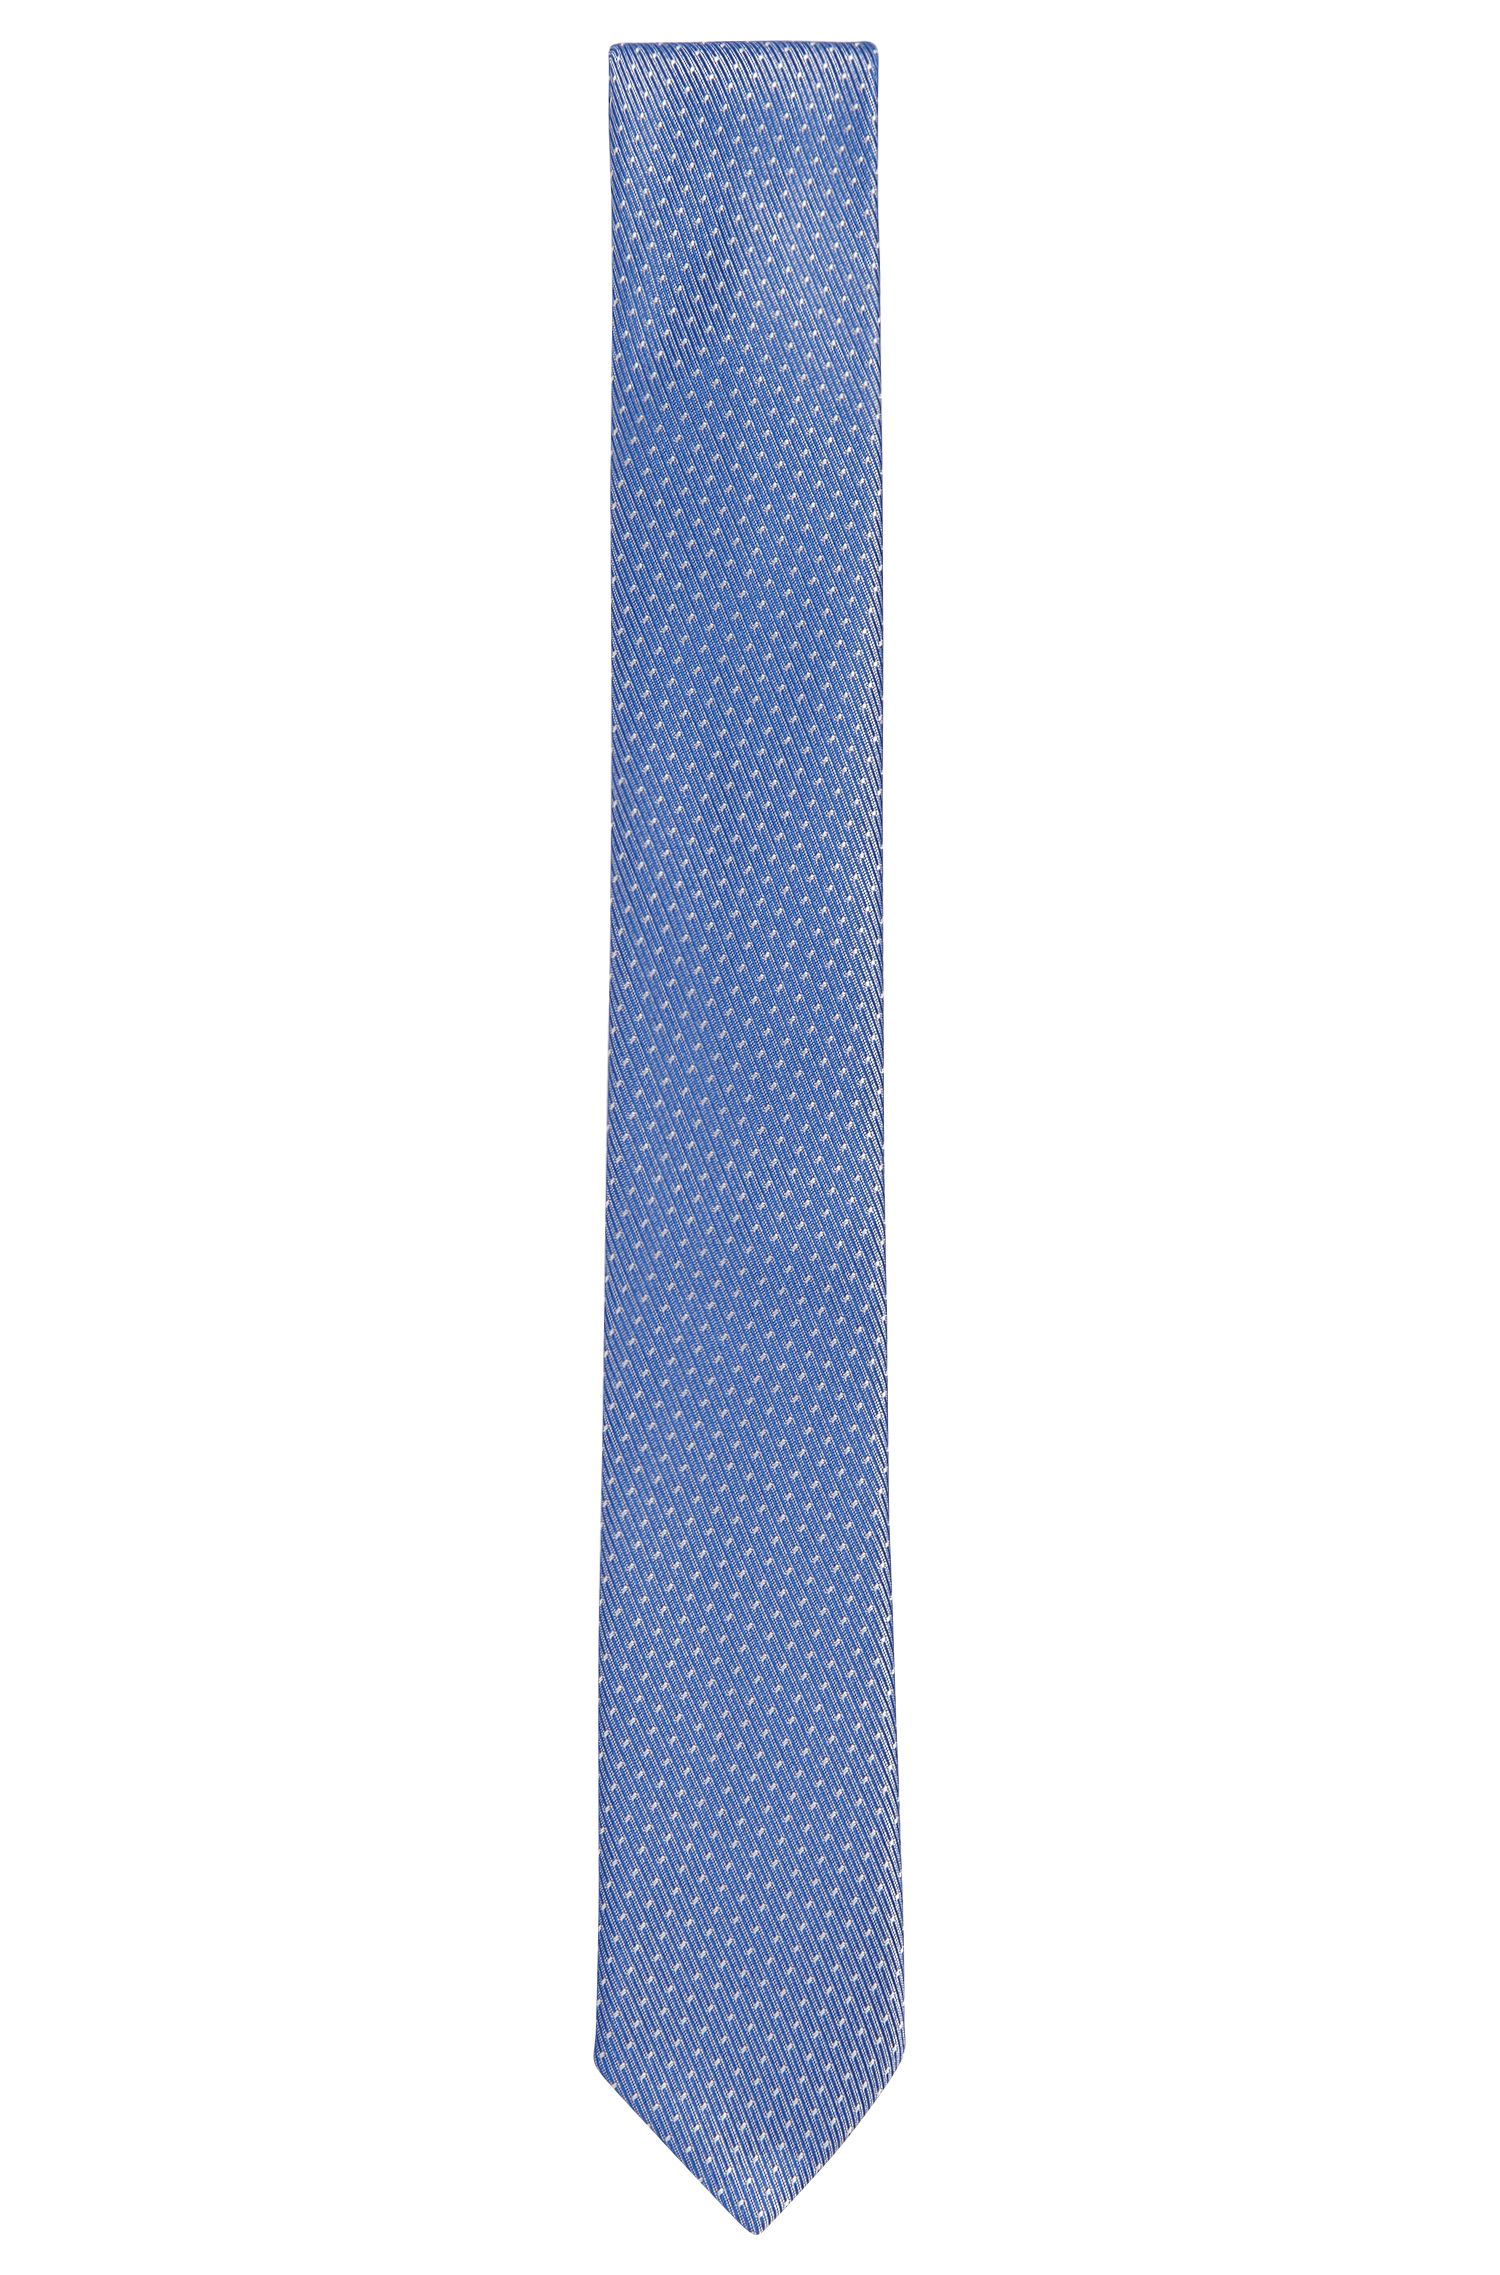 Embroidered Silk Tie, Slim | Tie 6 cm